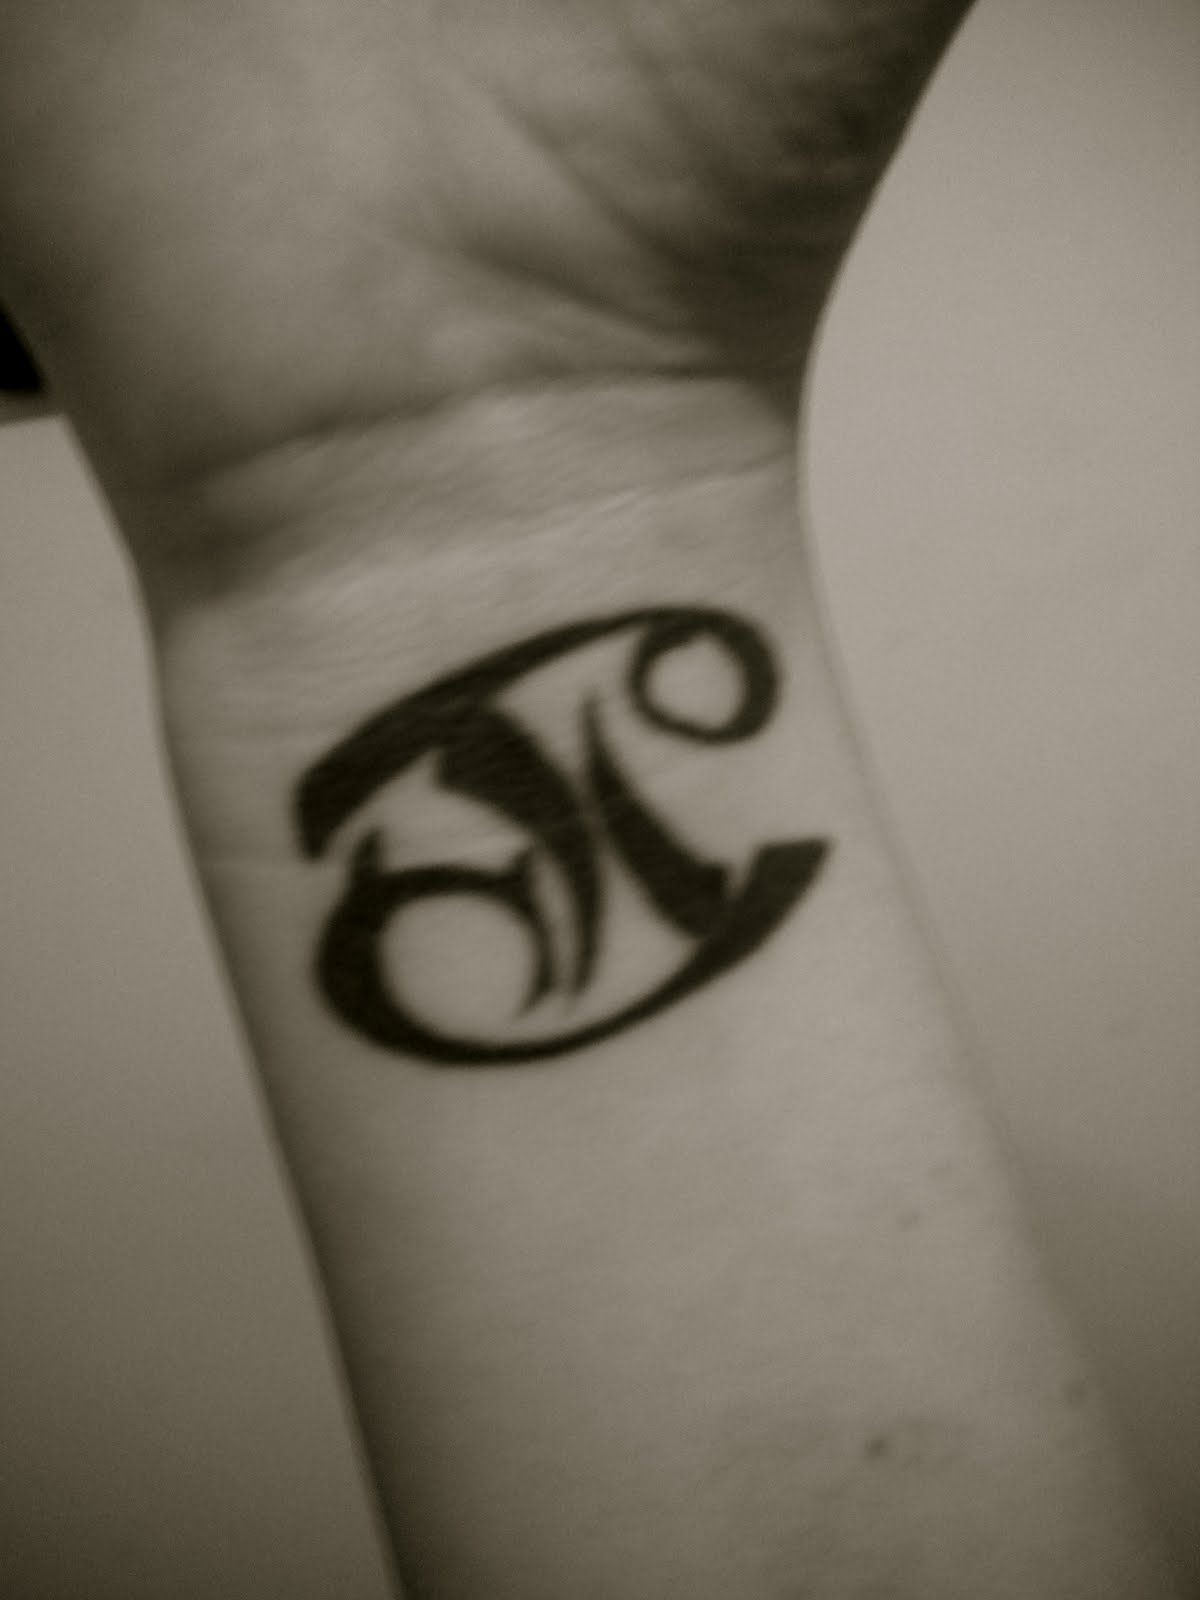 Gemini tattoos designs ideas and meaning tattoos for you for Gemini and cancer tattoo